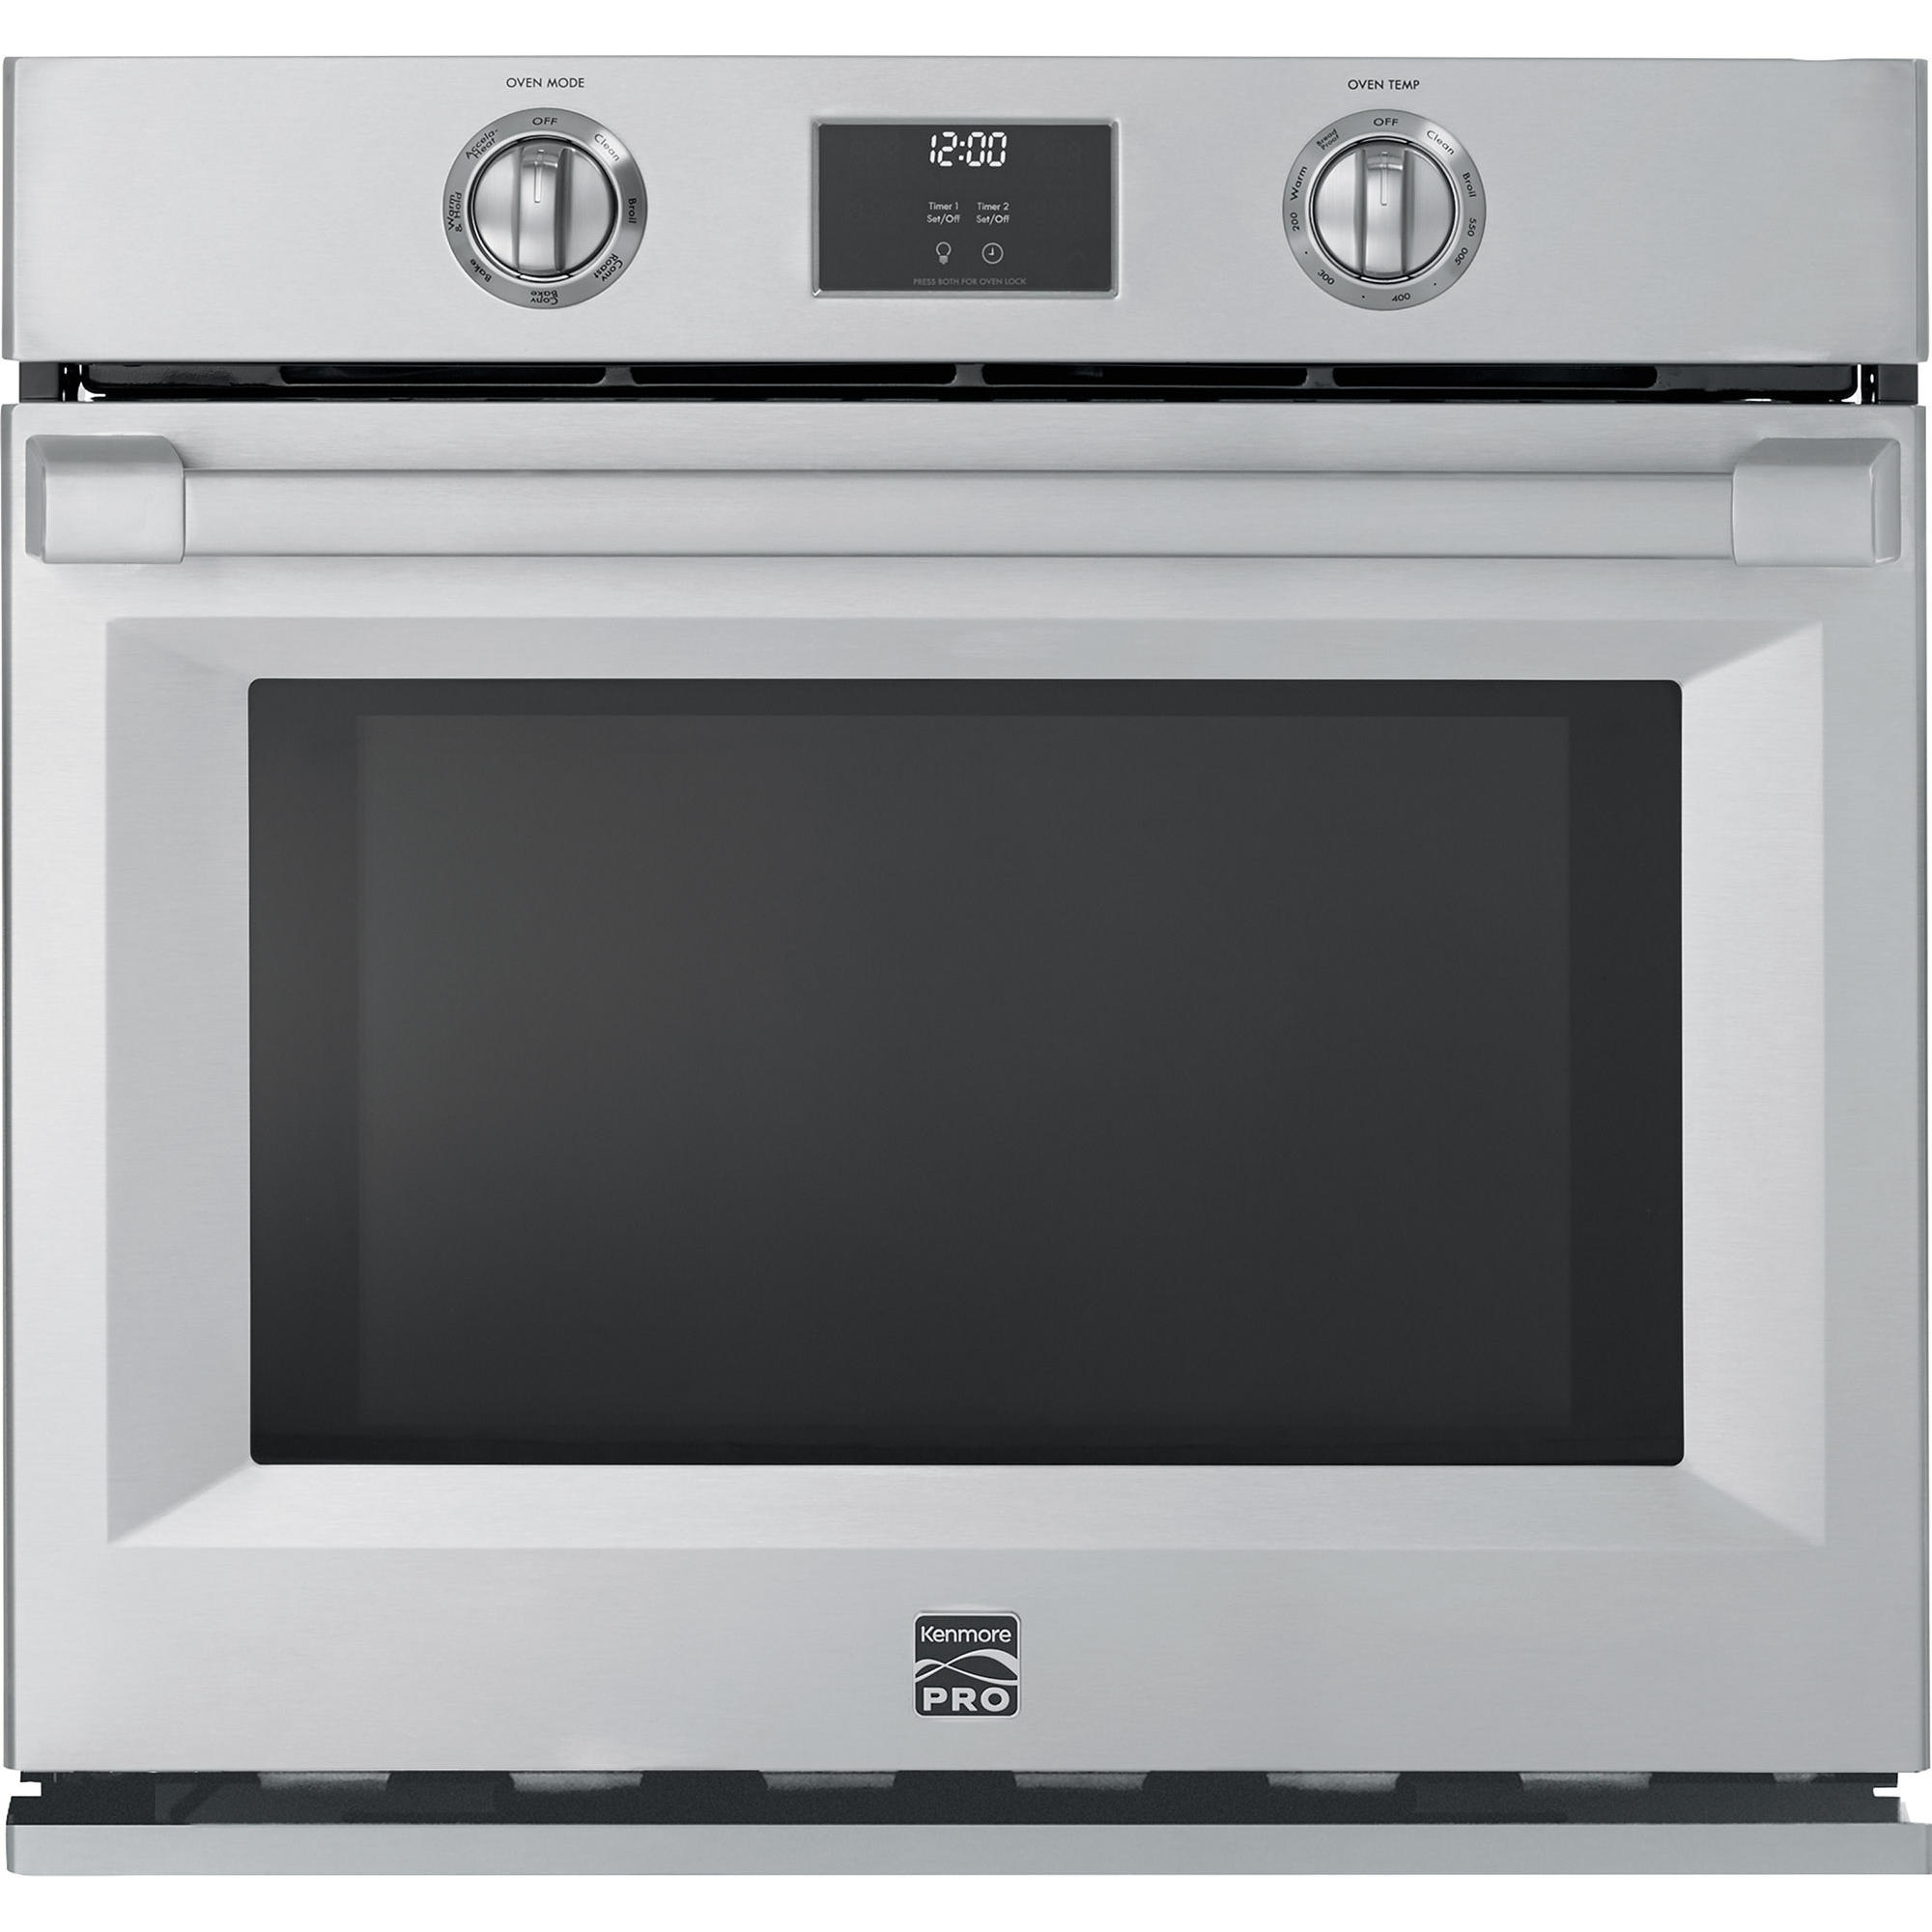 Kenmore Pro 41153 30 Electric Self-Clean Single Wall Oven - Stainless Steel